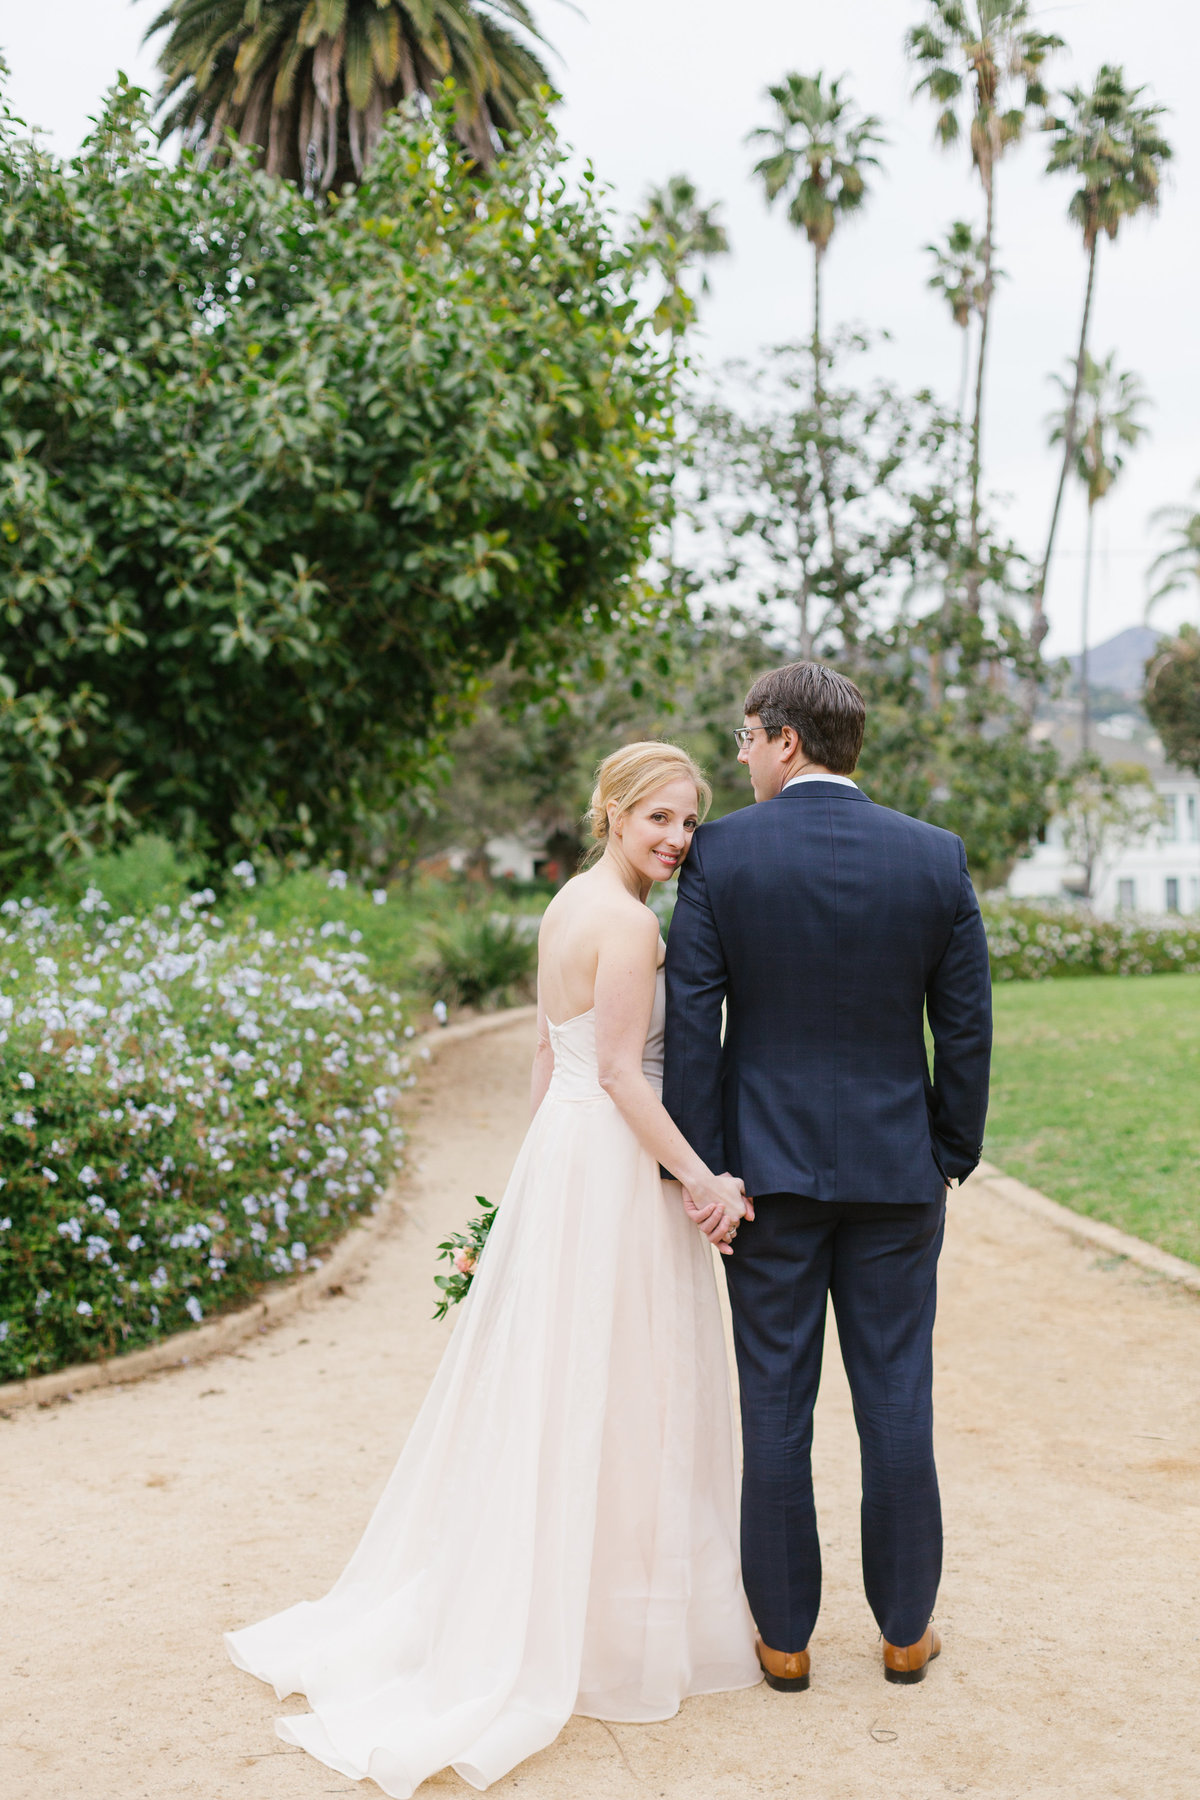 Intimate-Romantic-Santa-Barbara-Wedding-Venue-29